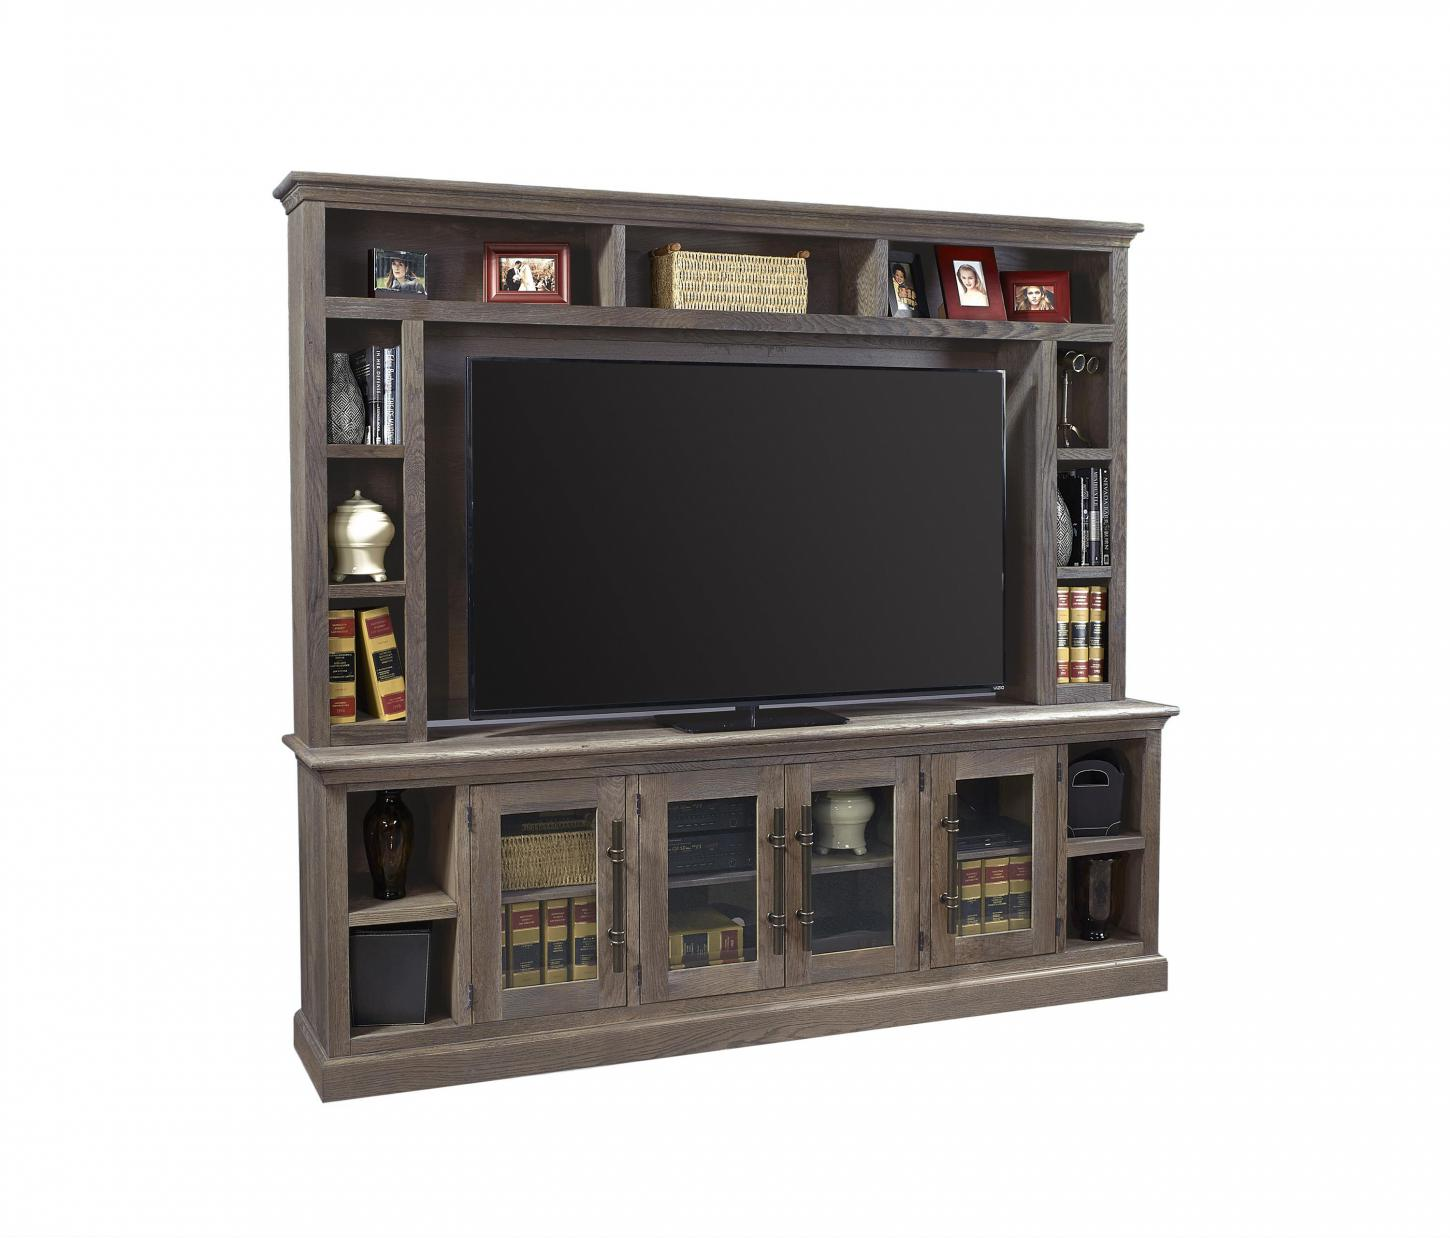 "Manchester 97"" Console & Hutch in the Barnhouse Brown finish"